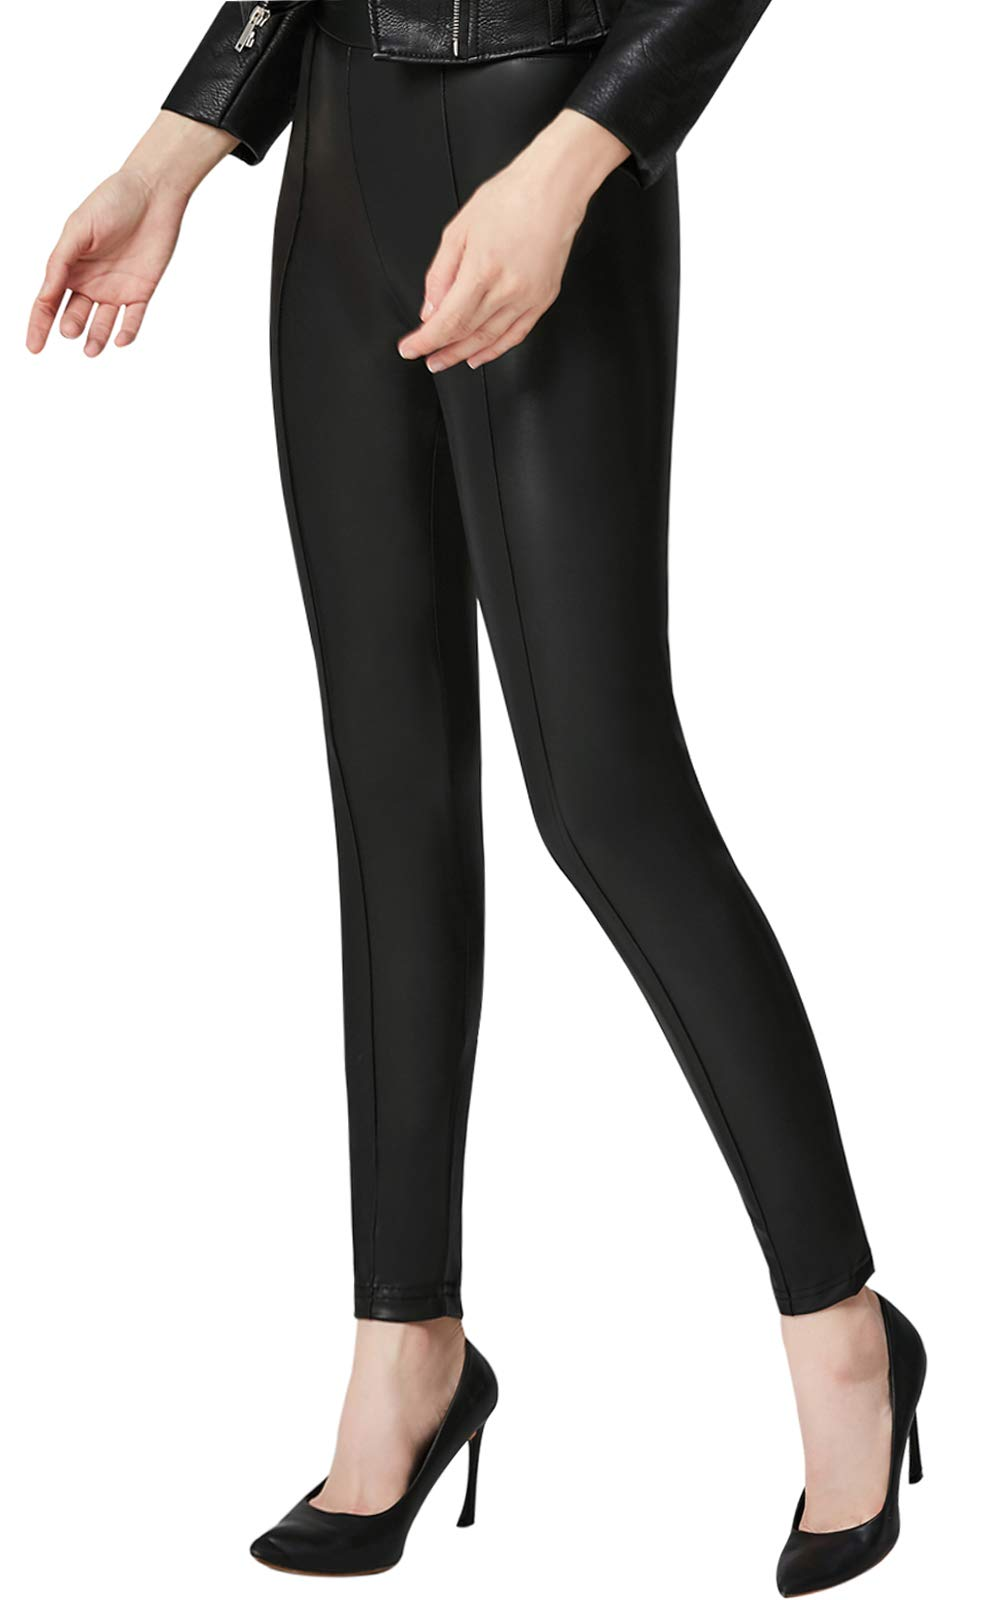 Everbellus High Waisted Faux Leather Leggings for Women Sexy Black Leather Pants X-Large by Everbellus (Image #4)